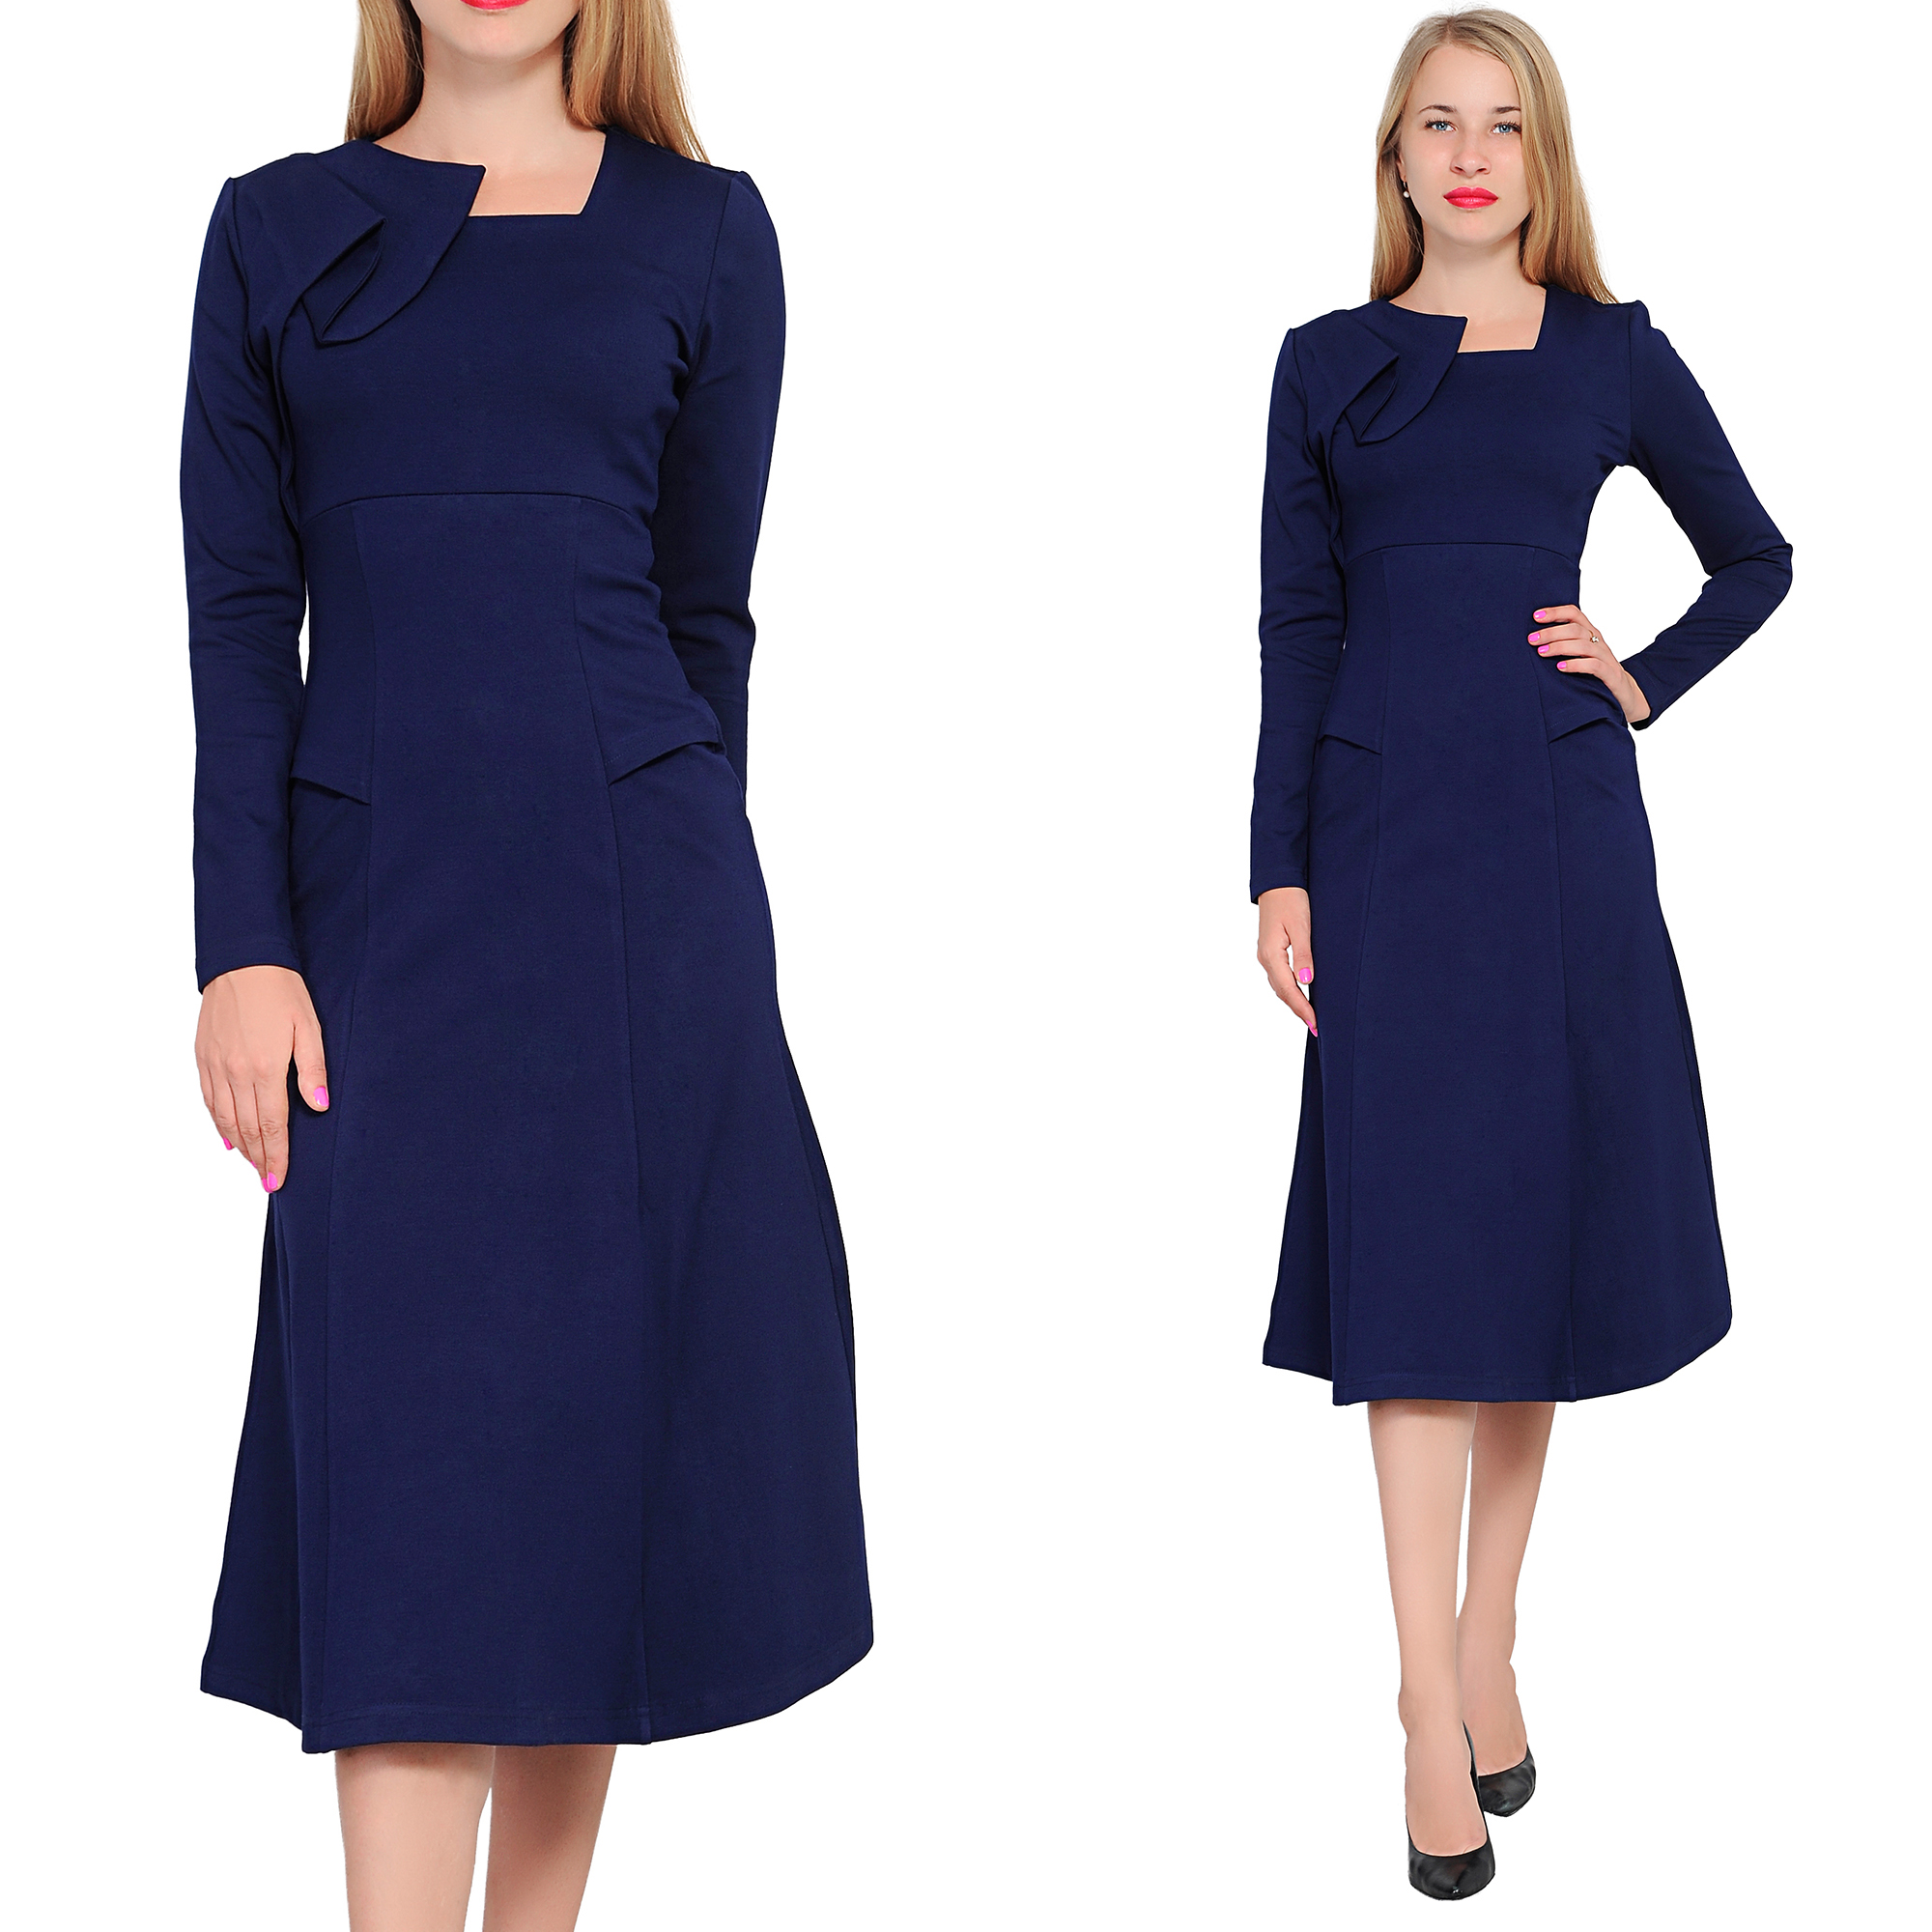 DARK BLUE MARYCRAFTS WOMENS ELEGANT A LINE MIDI EVENING COCKTAIL TEA ...